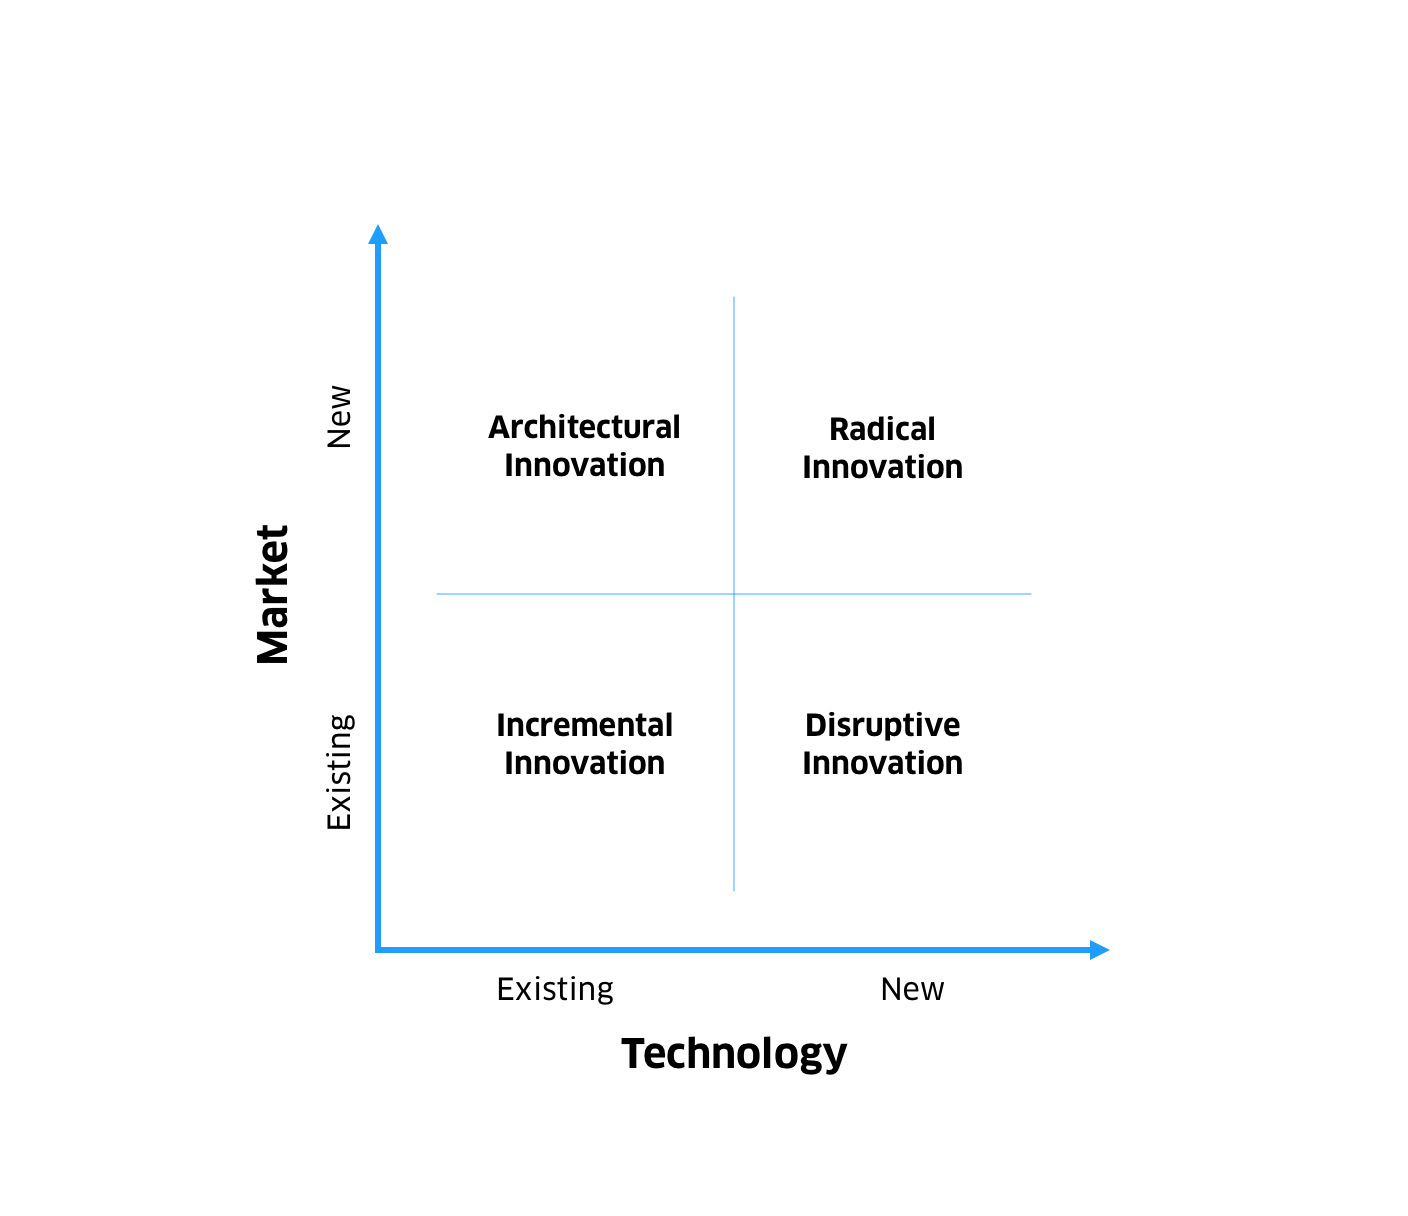 Graph showing the 4 different types of innovation